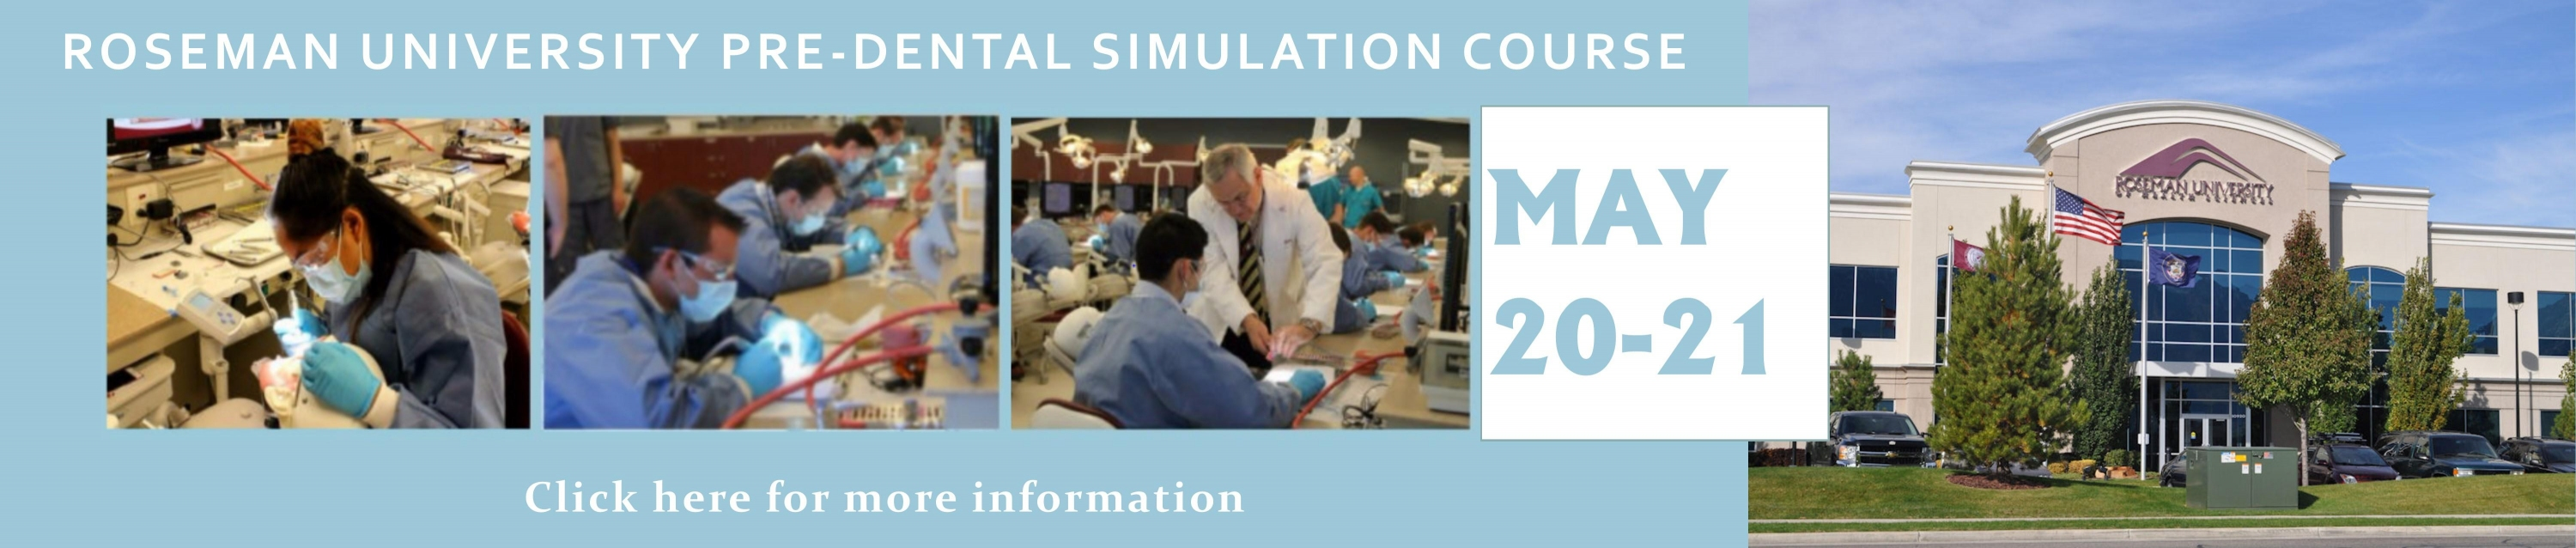 Roseman University Pre-Dental Simulation Course